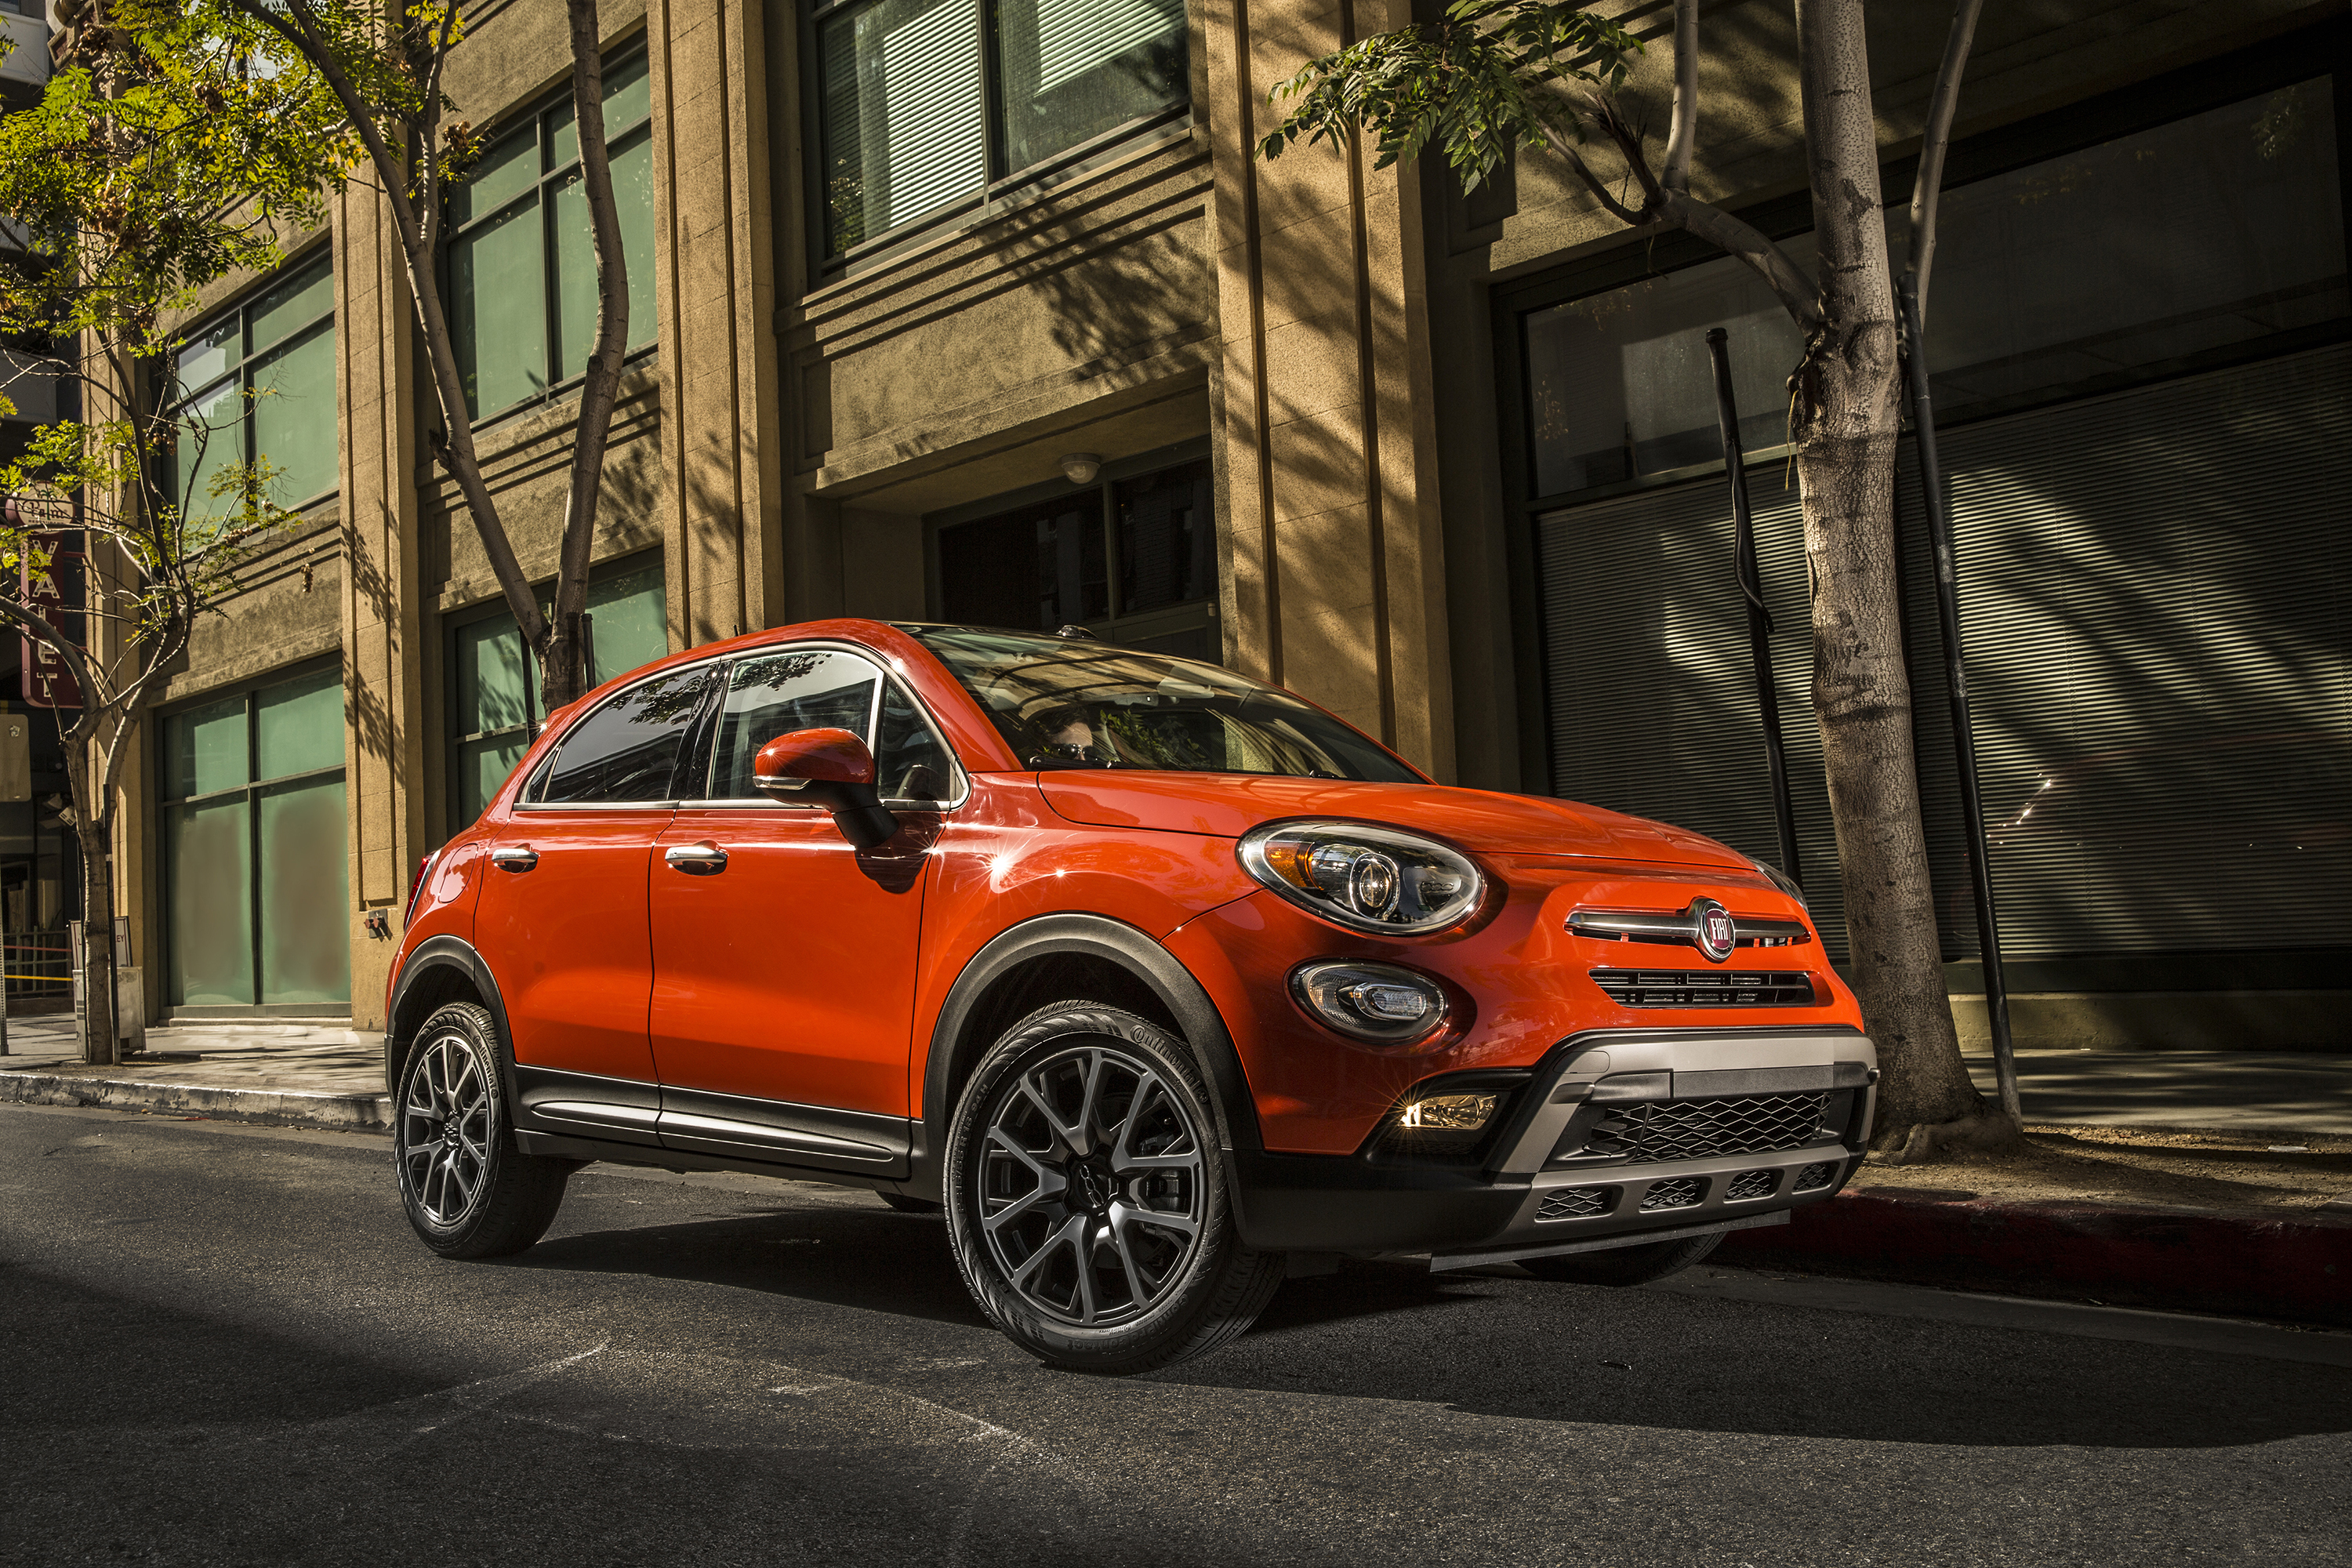 Photo 2015 Fiat 500X Trekking Orange auto 3000x2000 Cars automobile